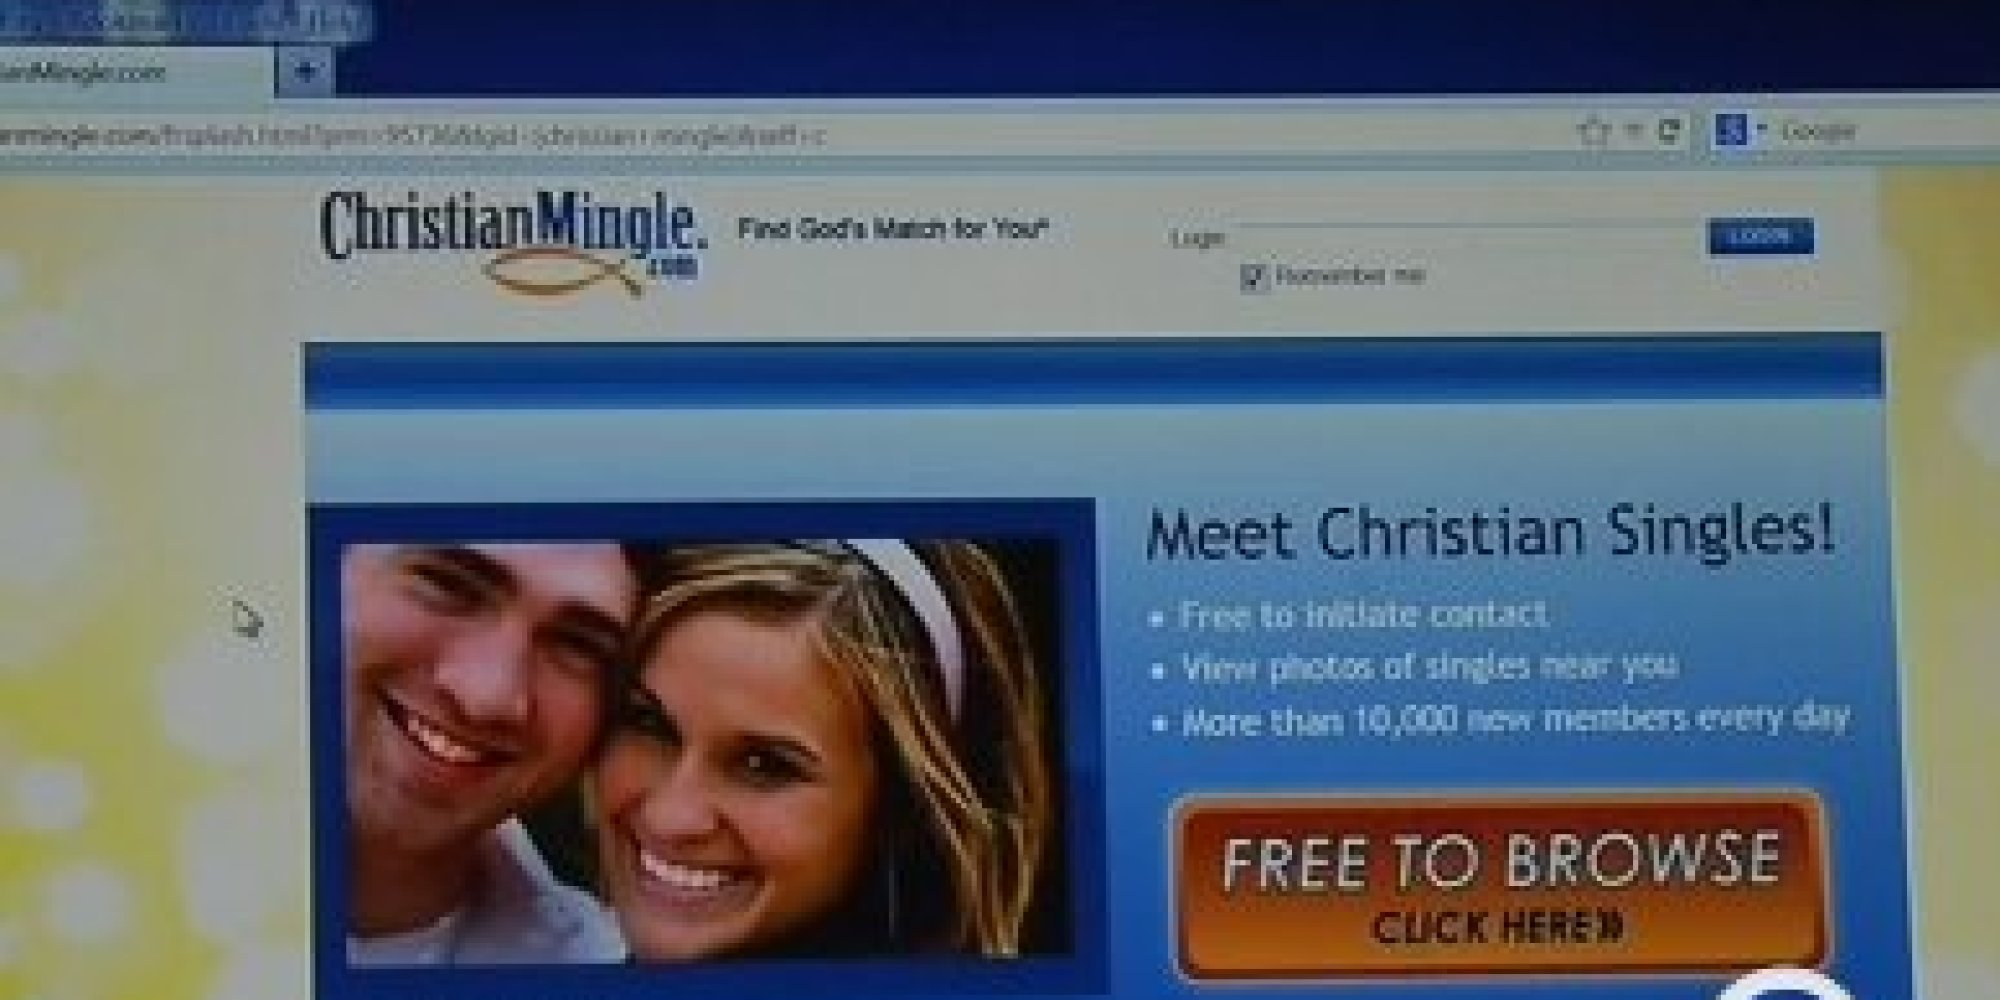 brunsville christian women dating site Brunsville's best 100% free christian dating site meet thousands of christian singles in brunsville with mingle2's free christian personal ads and chat rooms our network of christian men and women in brunsville is the perfect place to make christian friends or find a christian boyfriend or girlfriend in brunsville.